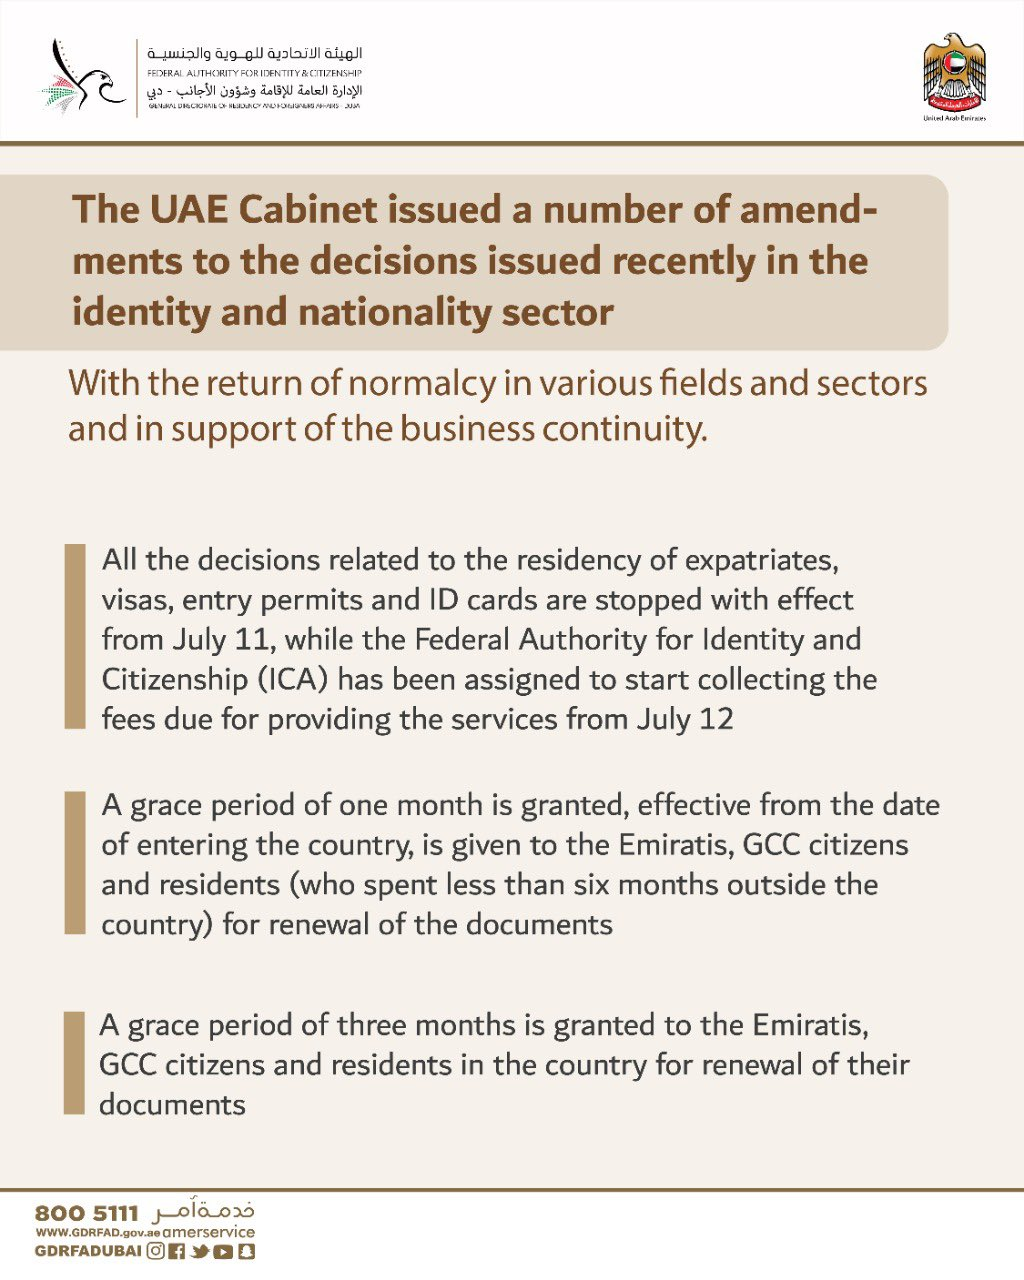 uae cabinet issue uae visa amendments 1